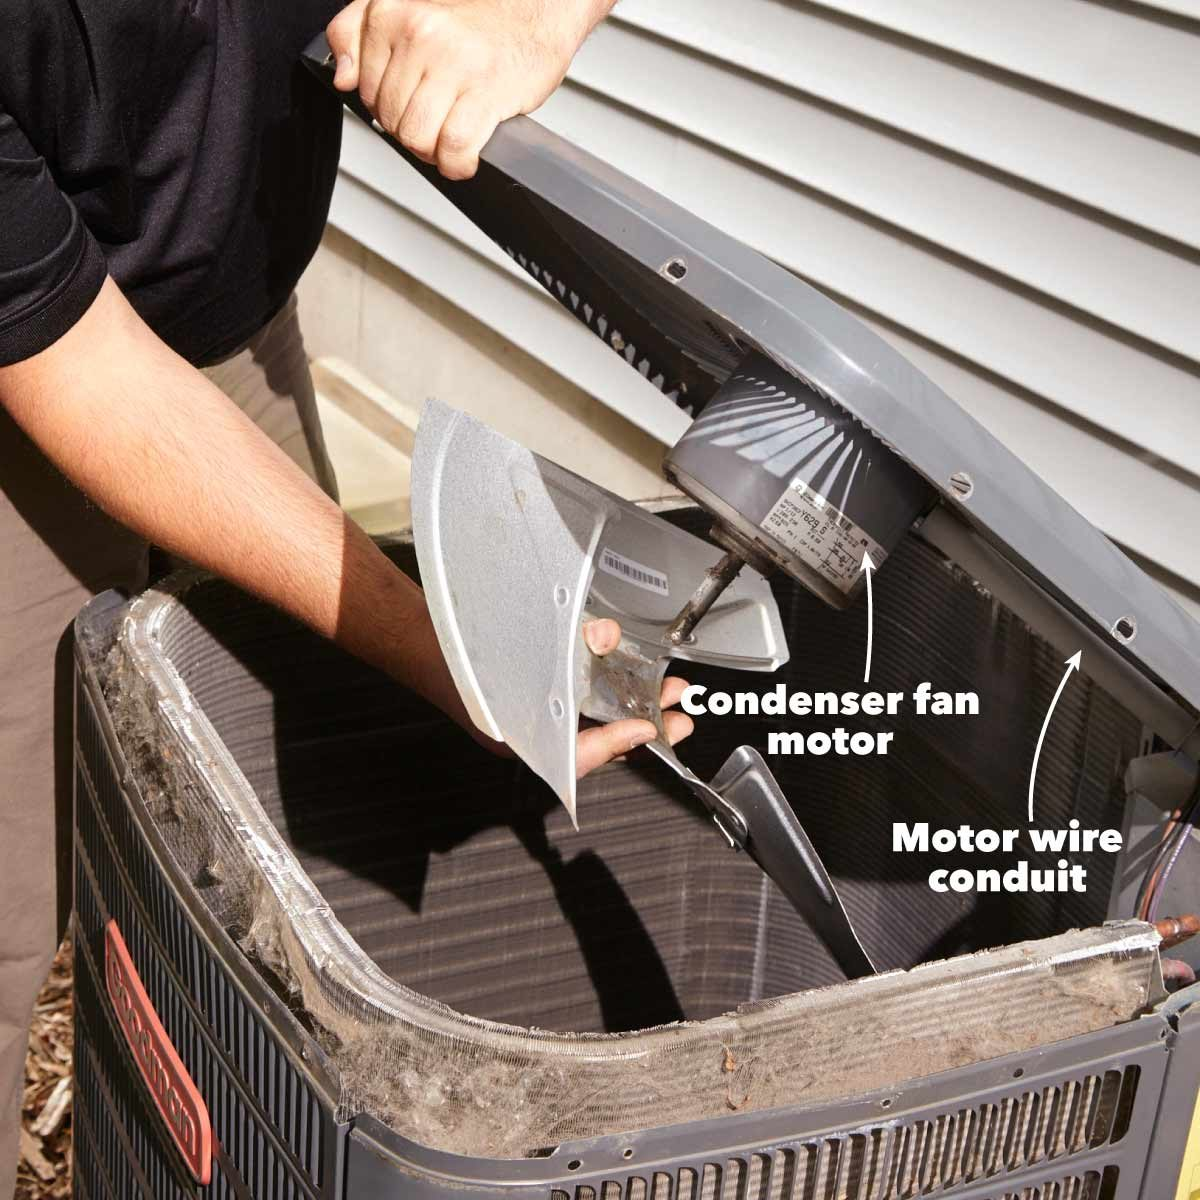 Replace the fan motor in air conditioner